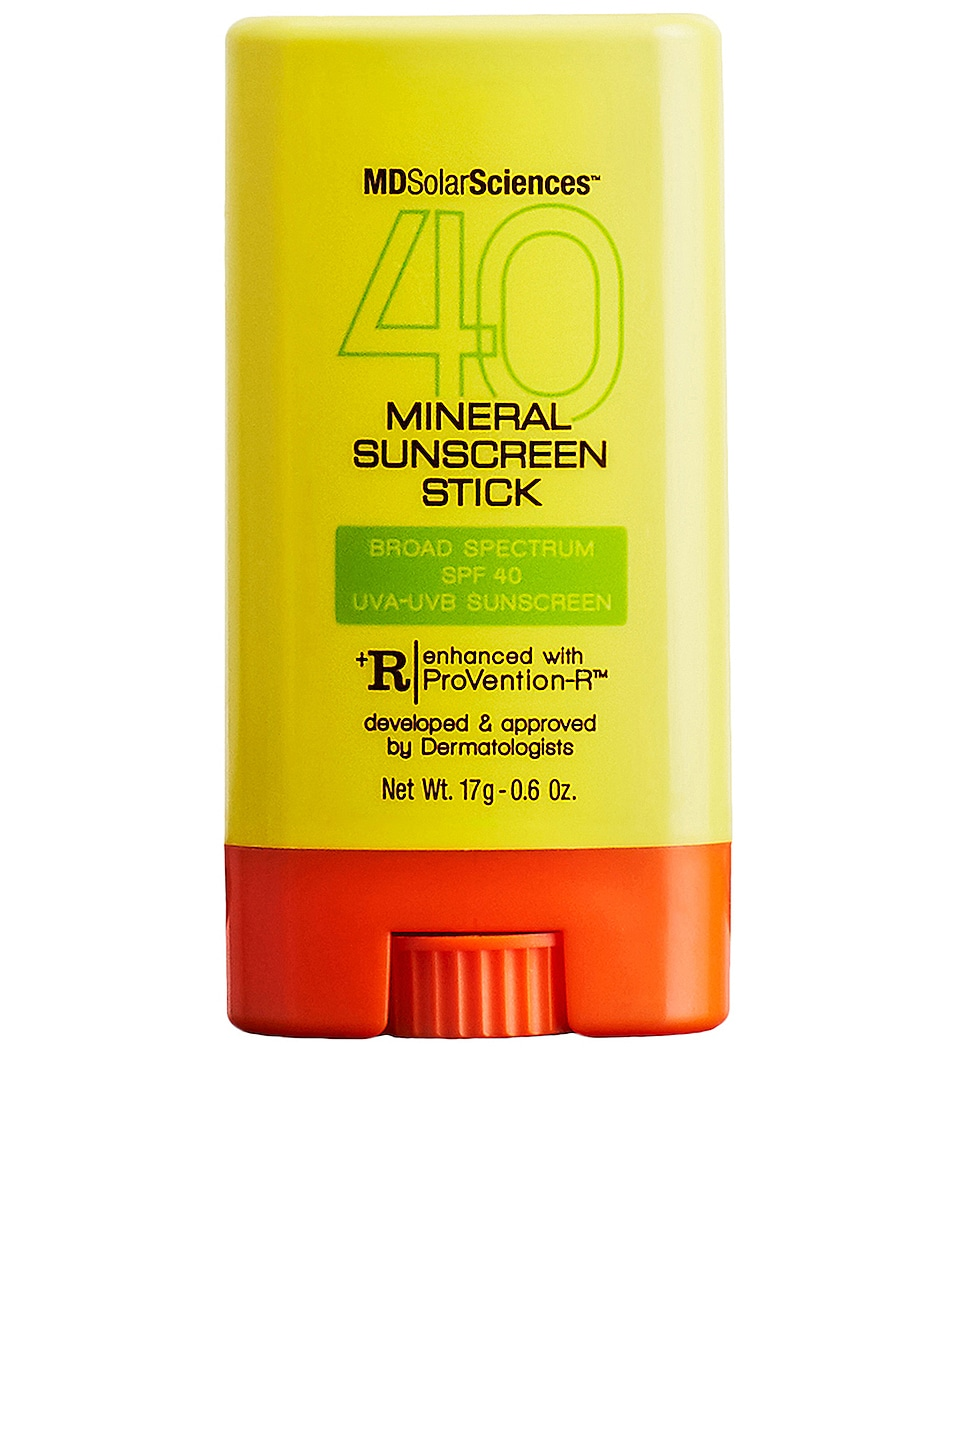 MDSolarSciences Mineral Sunscreen Stick